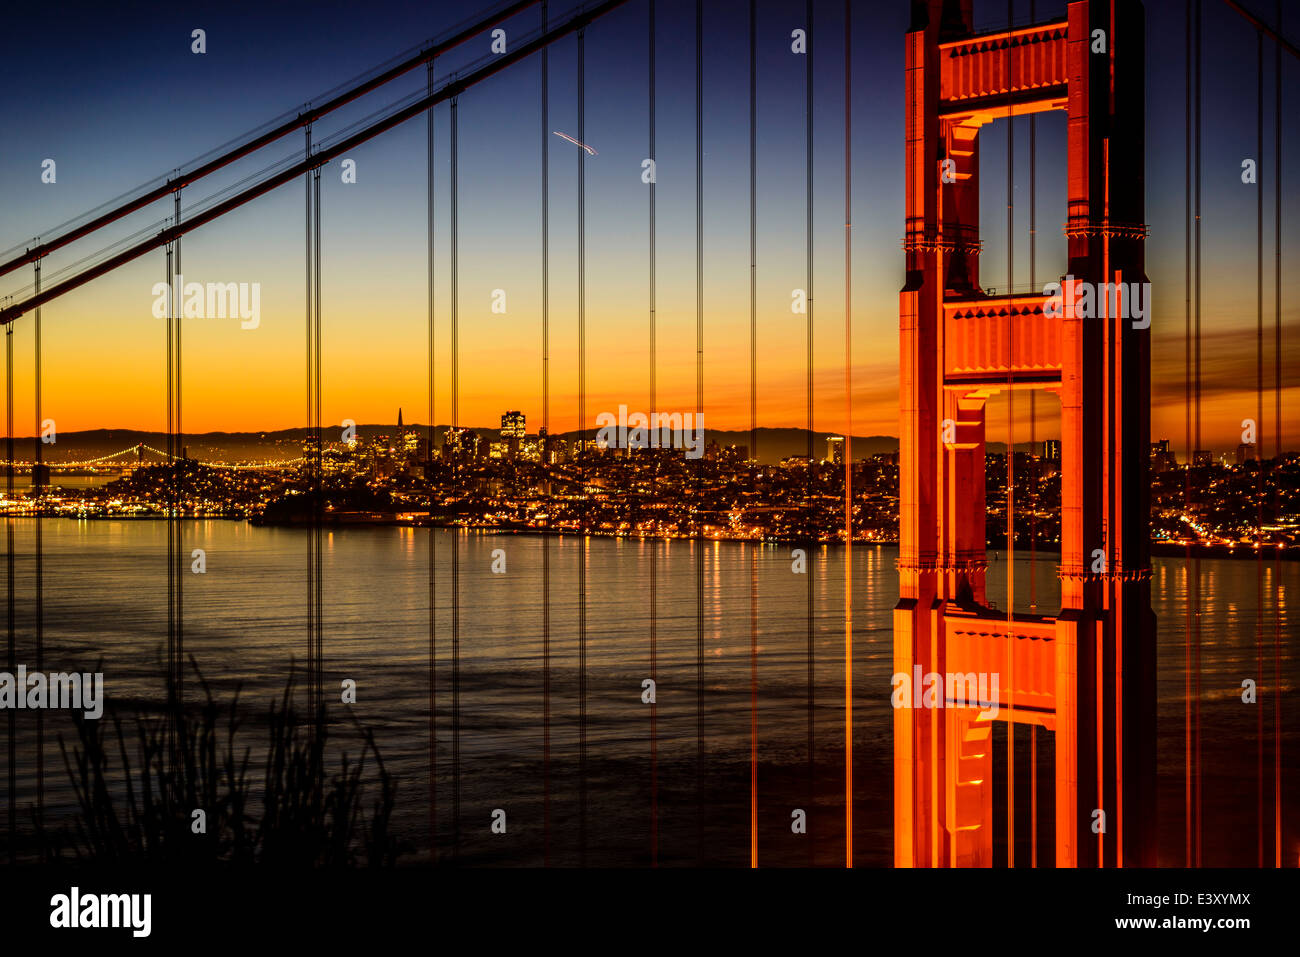 Golden Gate Bridge and San Francisco skyline lit up at night, San Francisco, California, United States Stock Photo